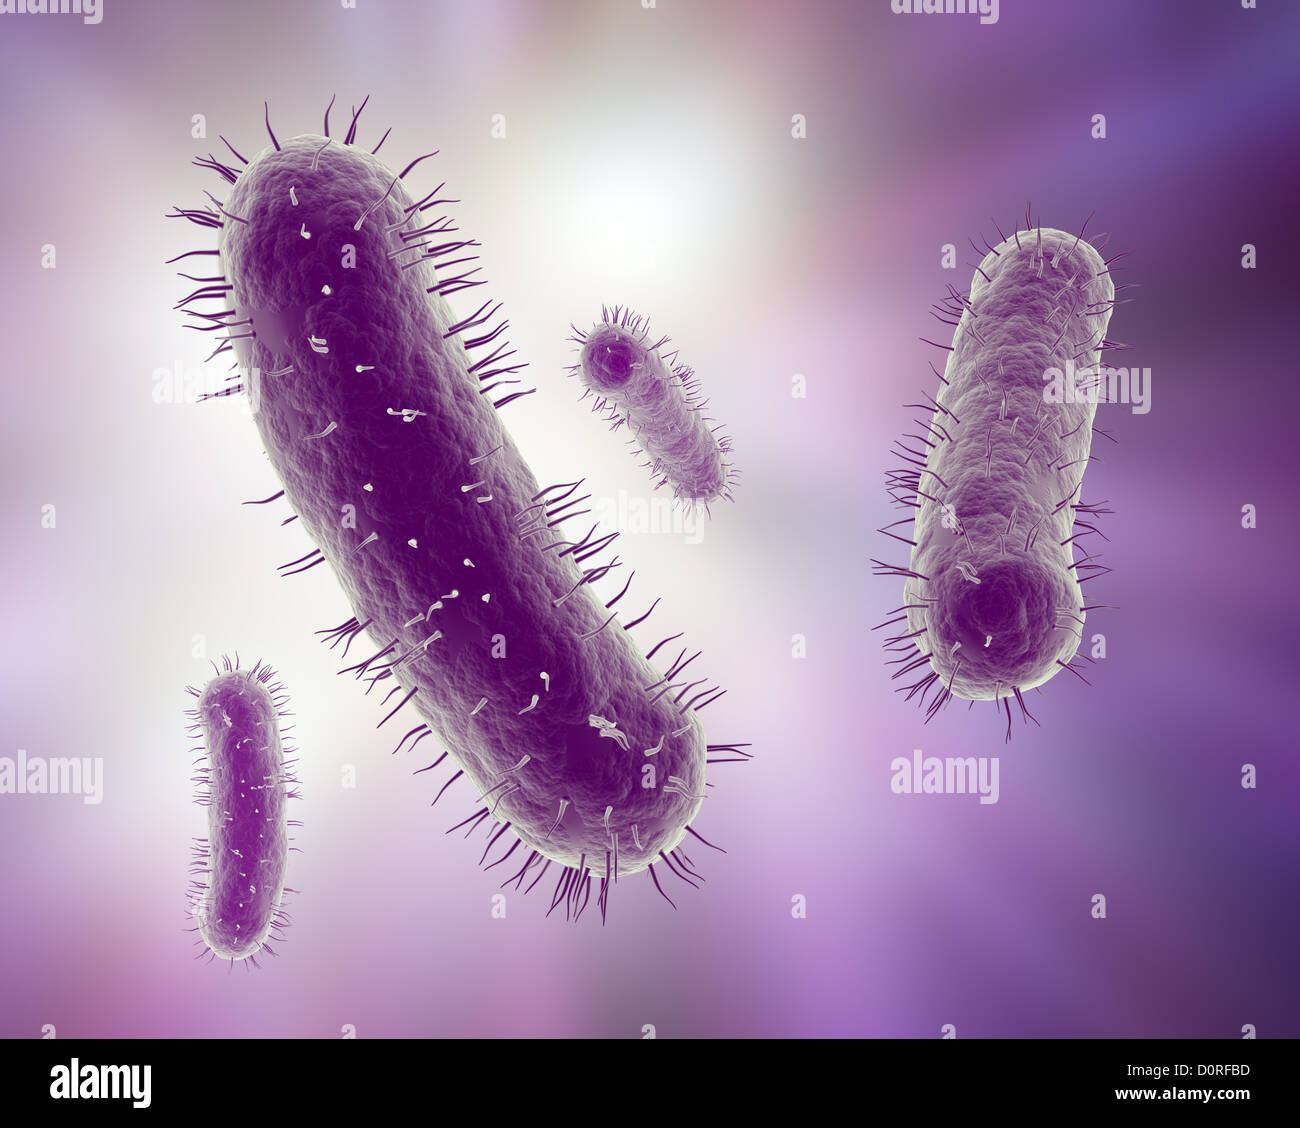 Scientific illustration of bacteria - Stock Image